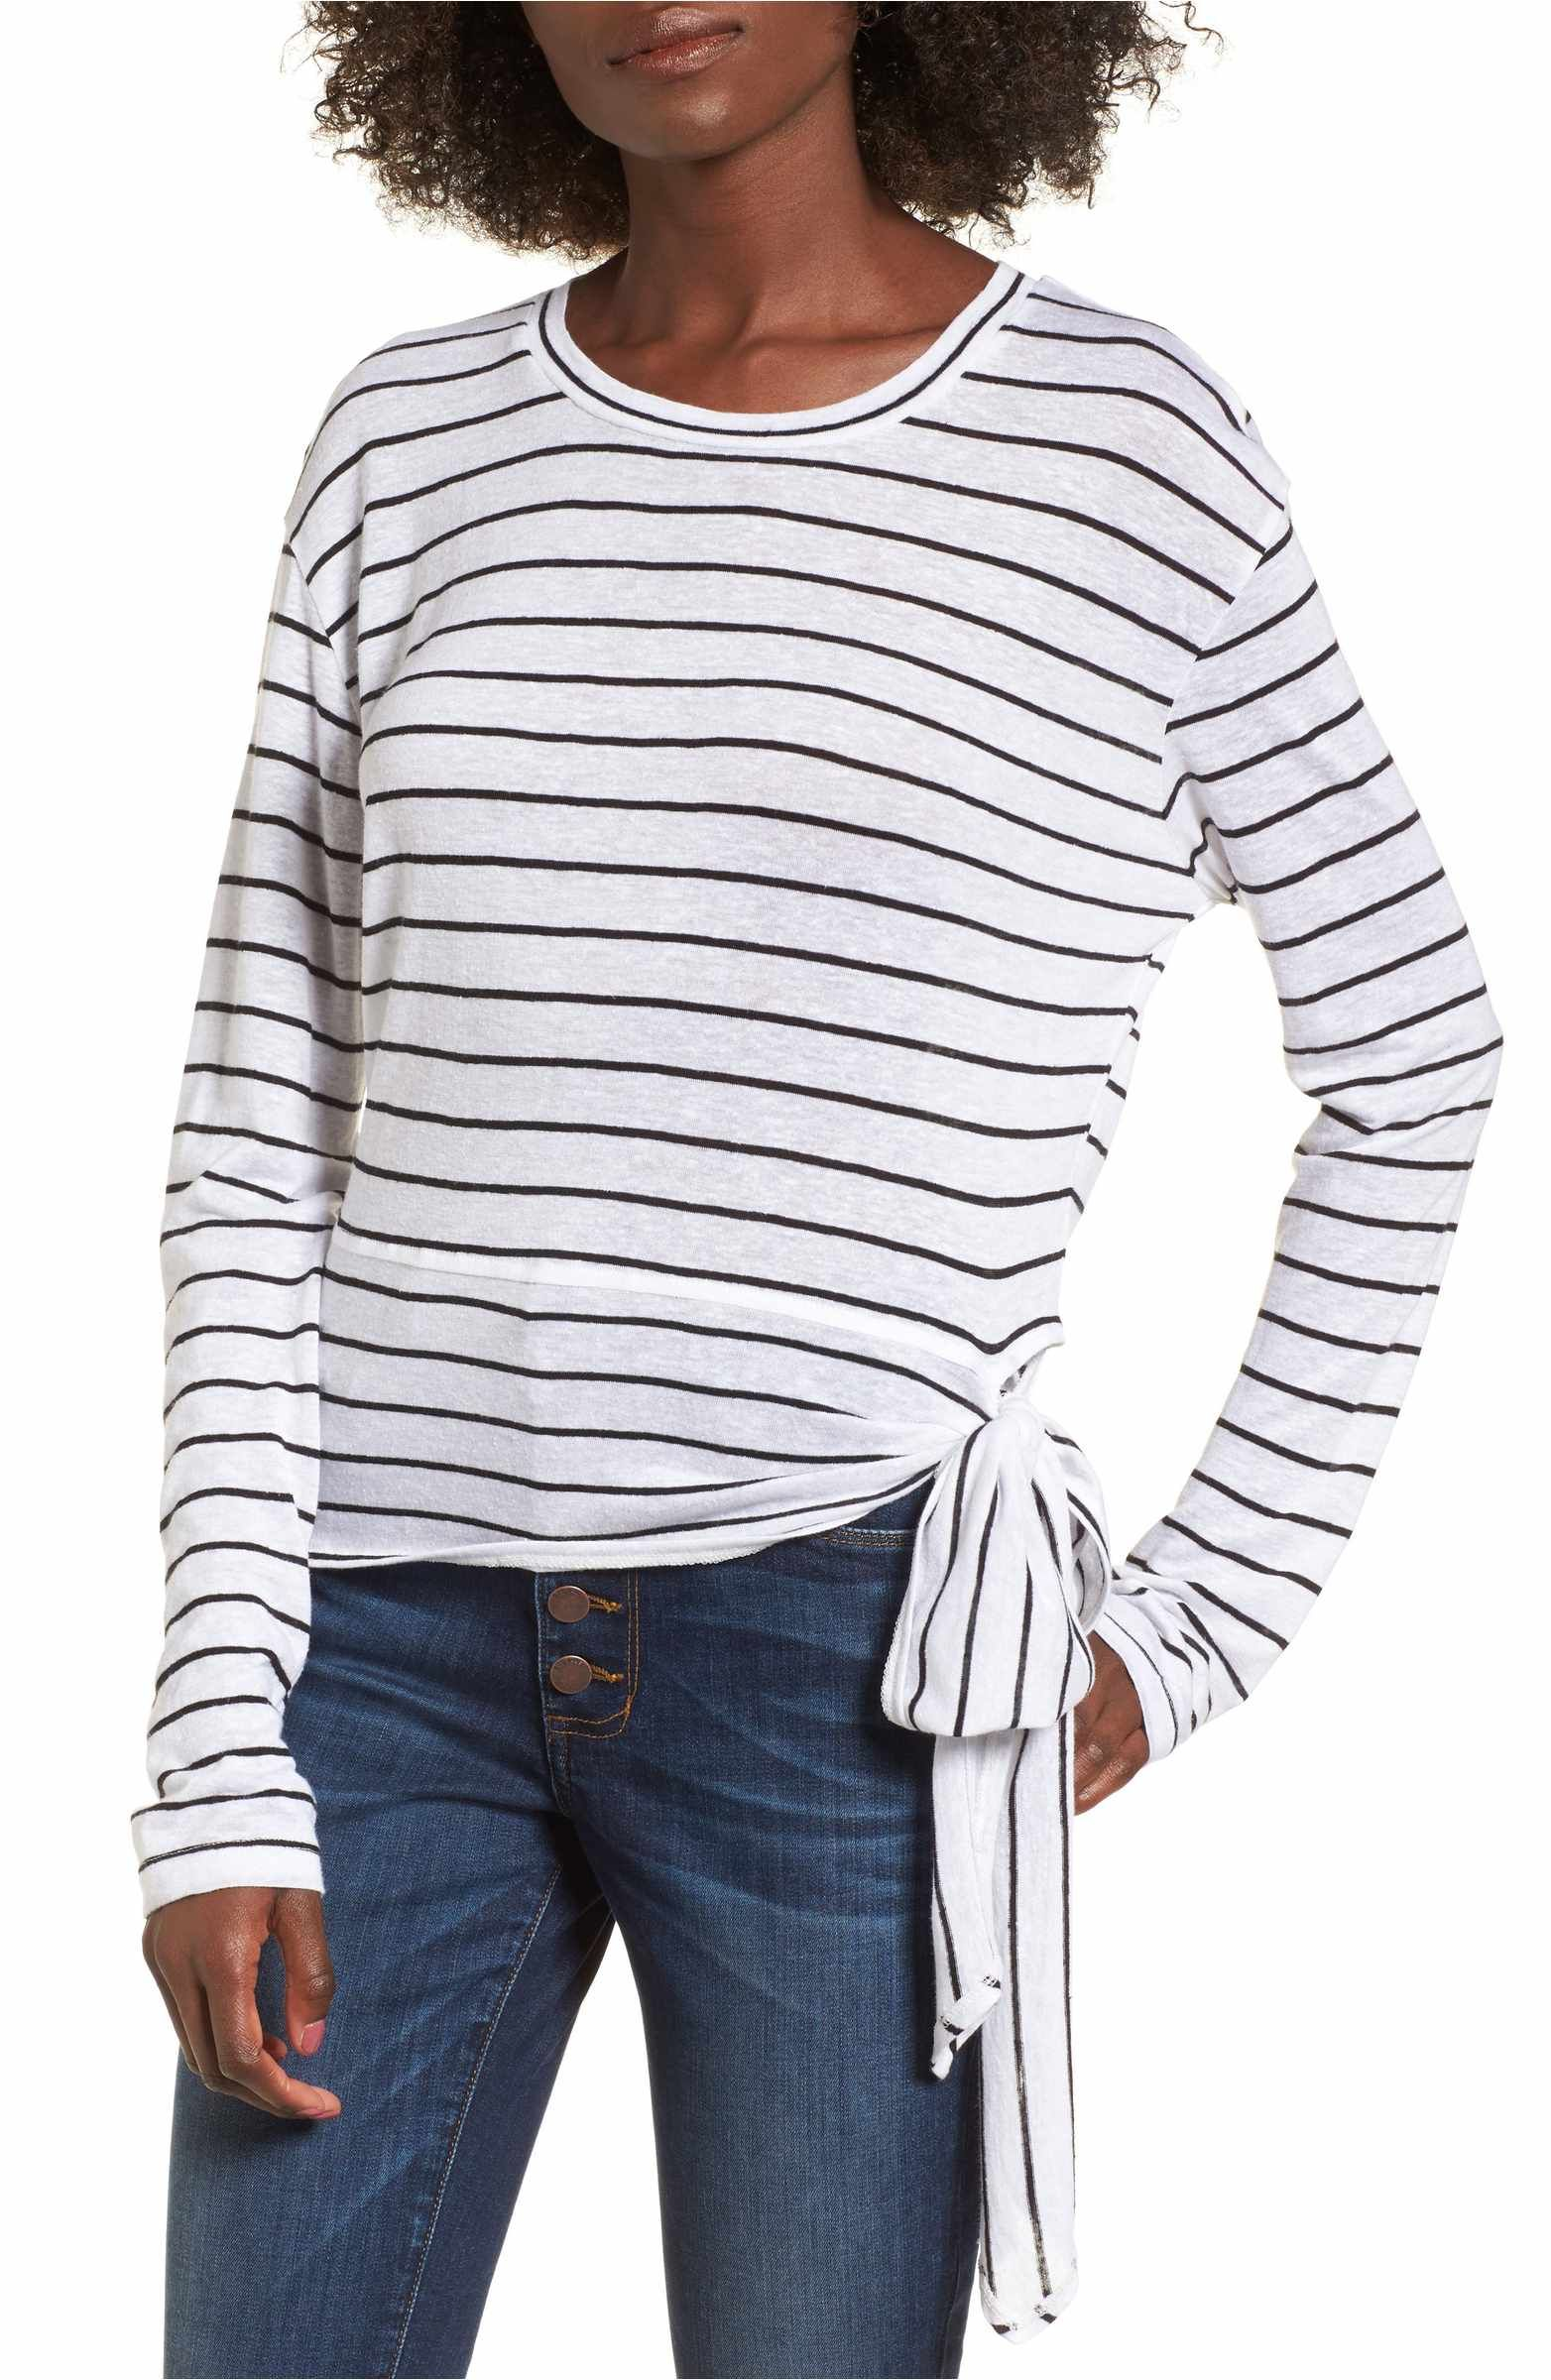 Main Image Bp Side Tie Stripe Tee Nordstrom Shirt Striped Tee Clothes